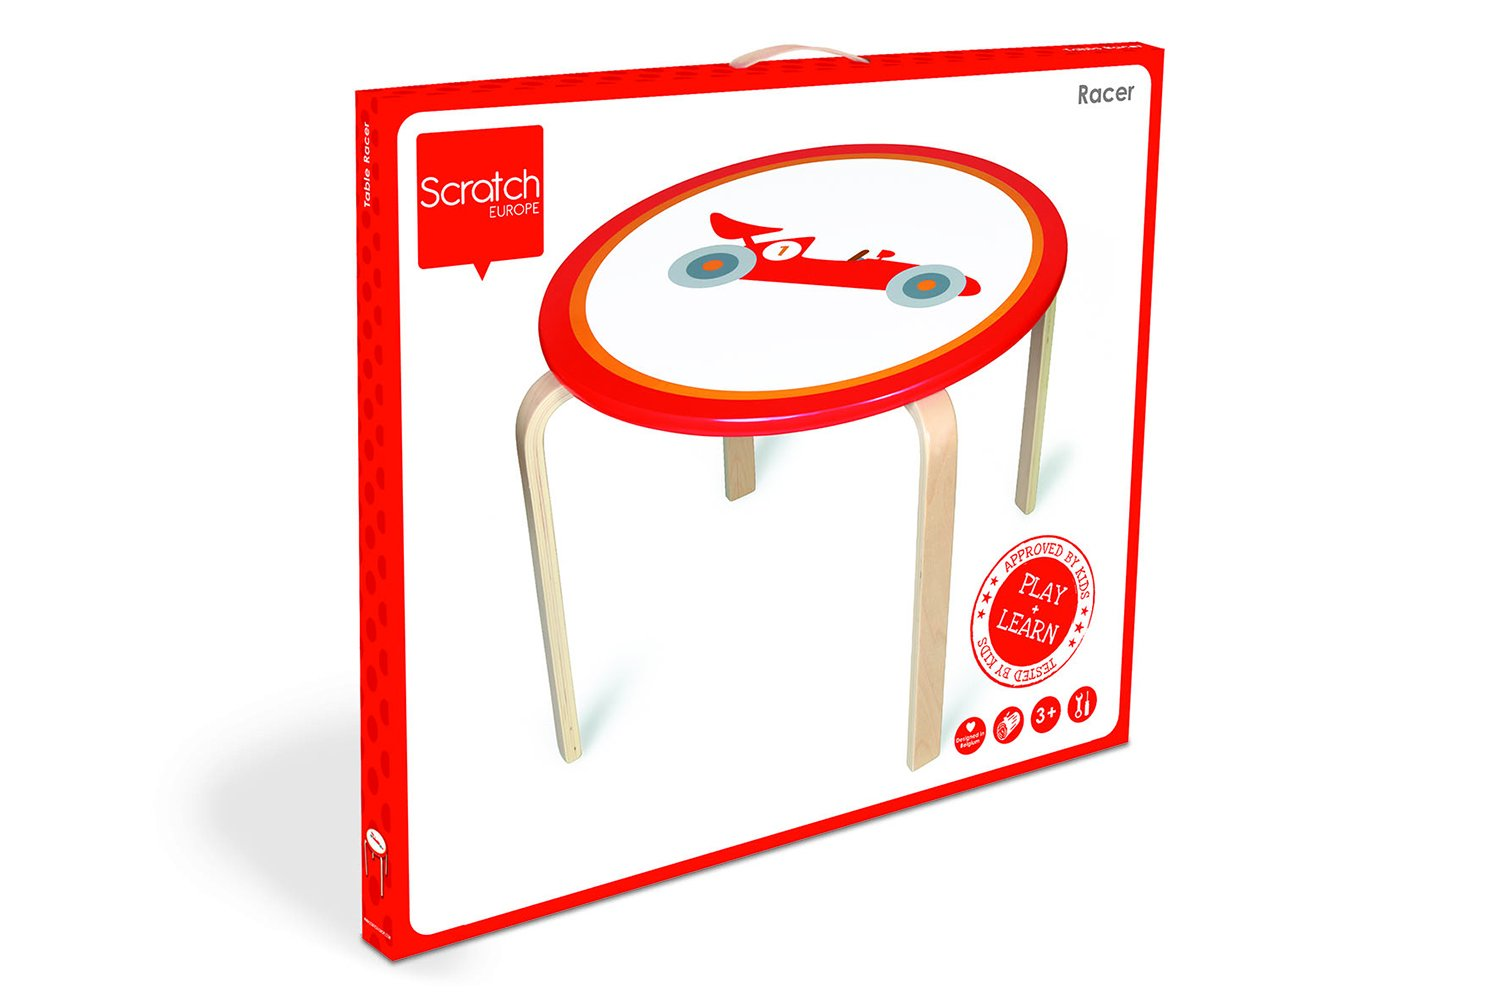 Scratch Racer Table 100.6182310